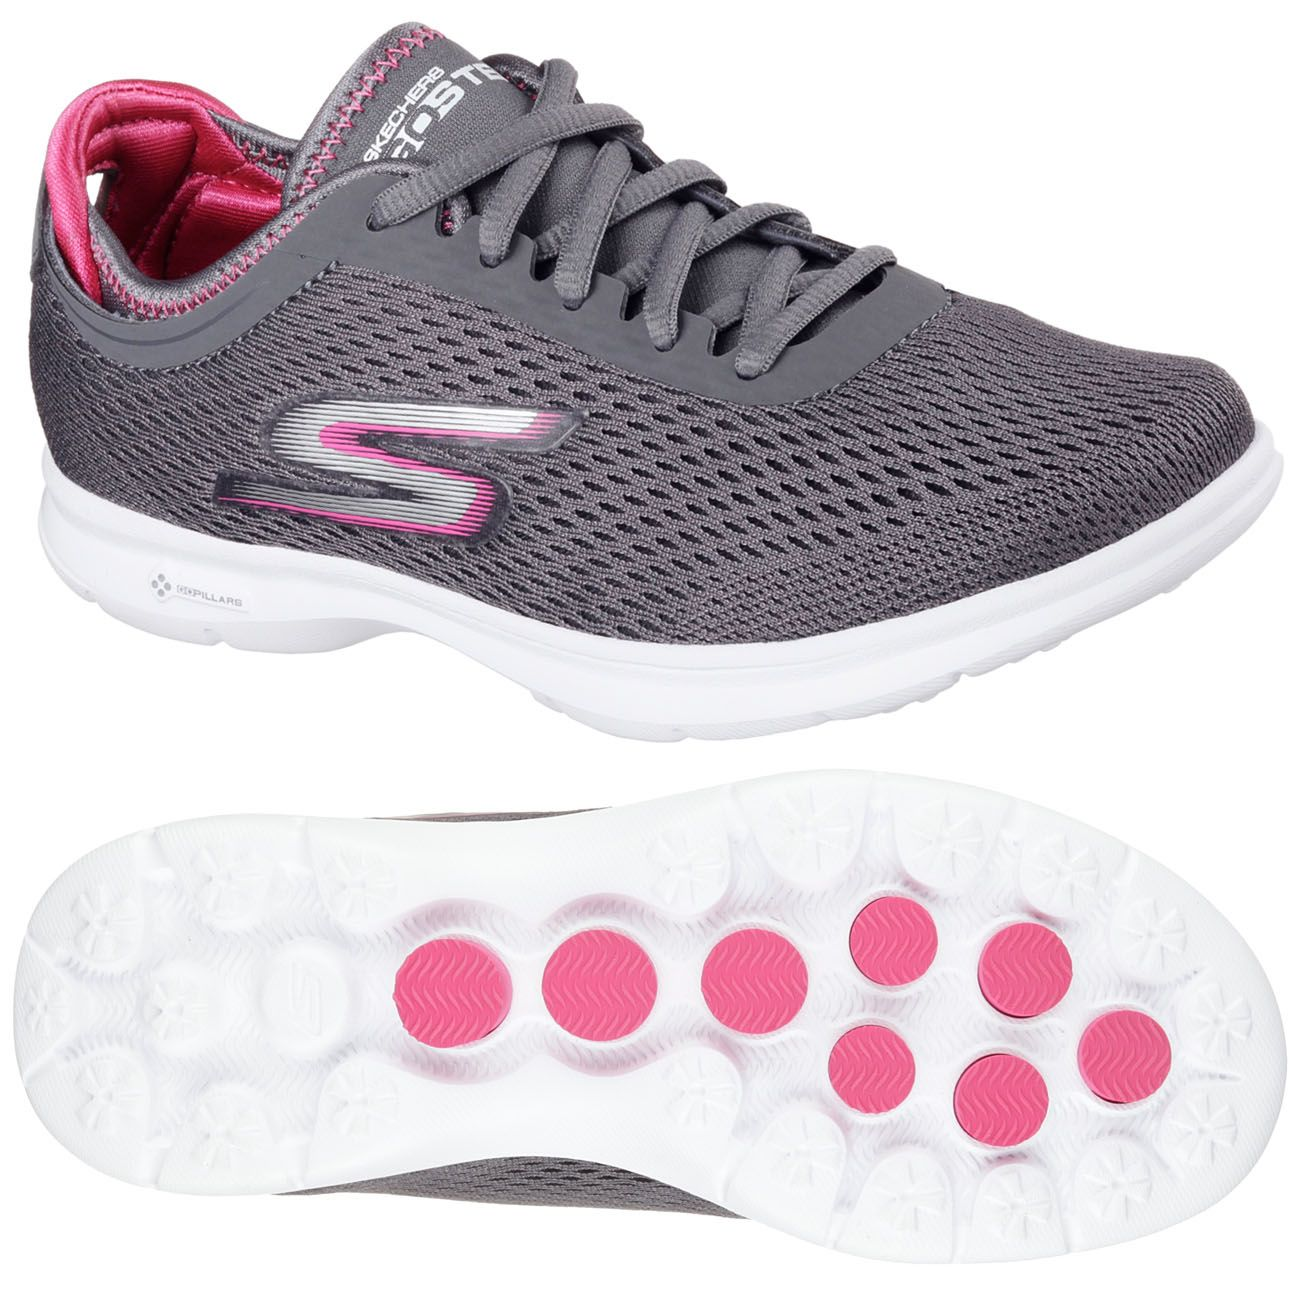 skechers go step sport athletic shoes